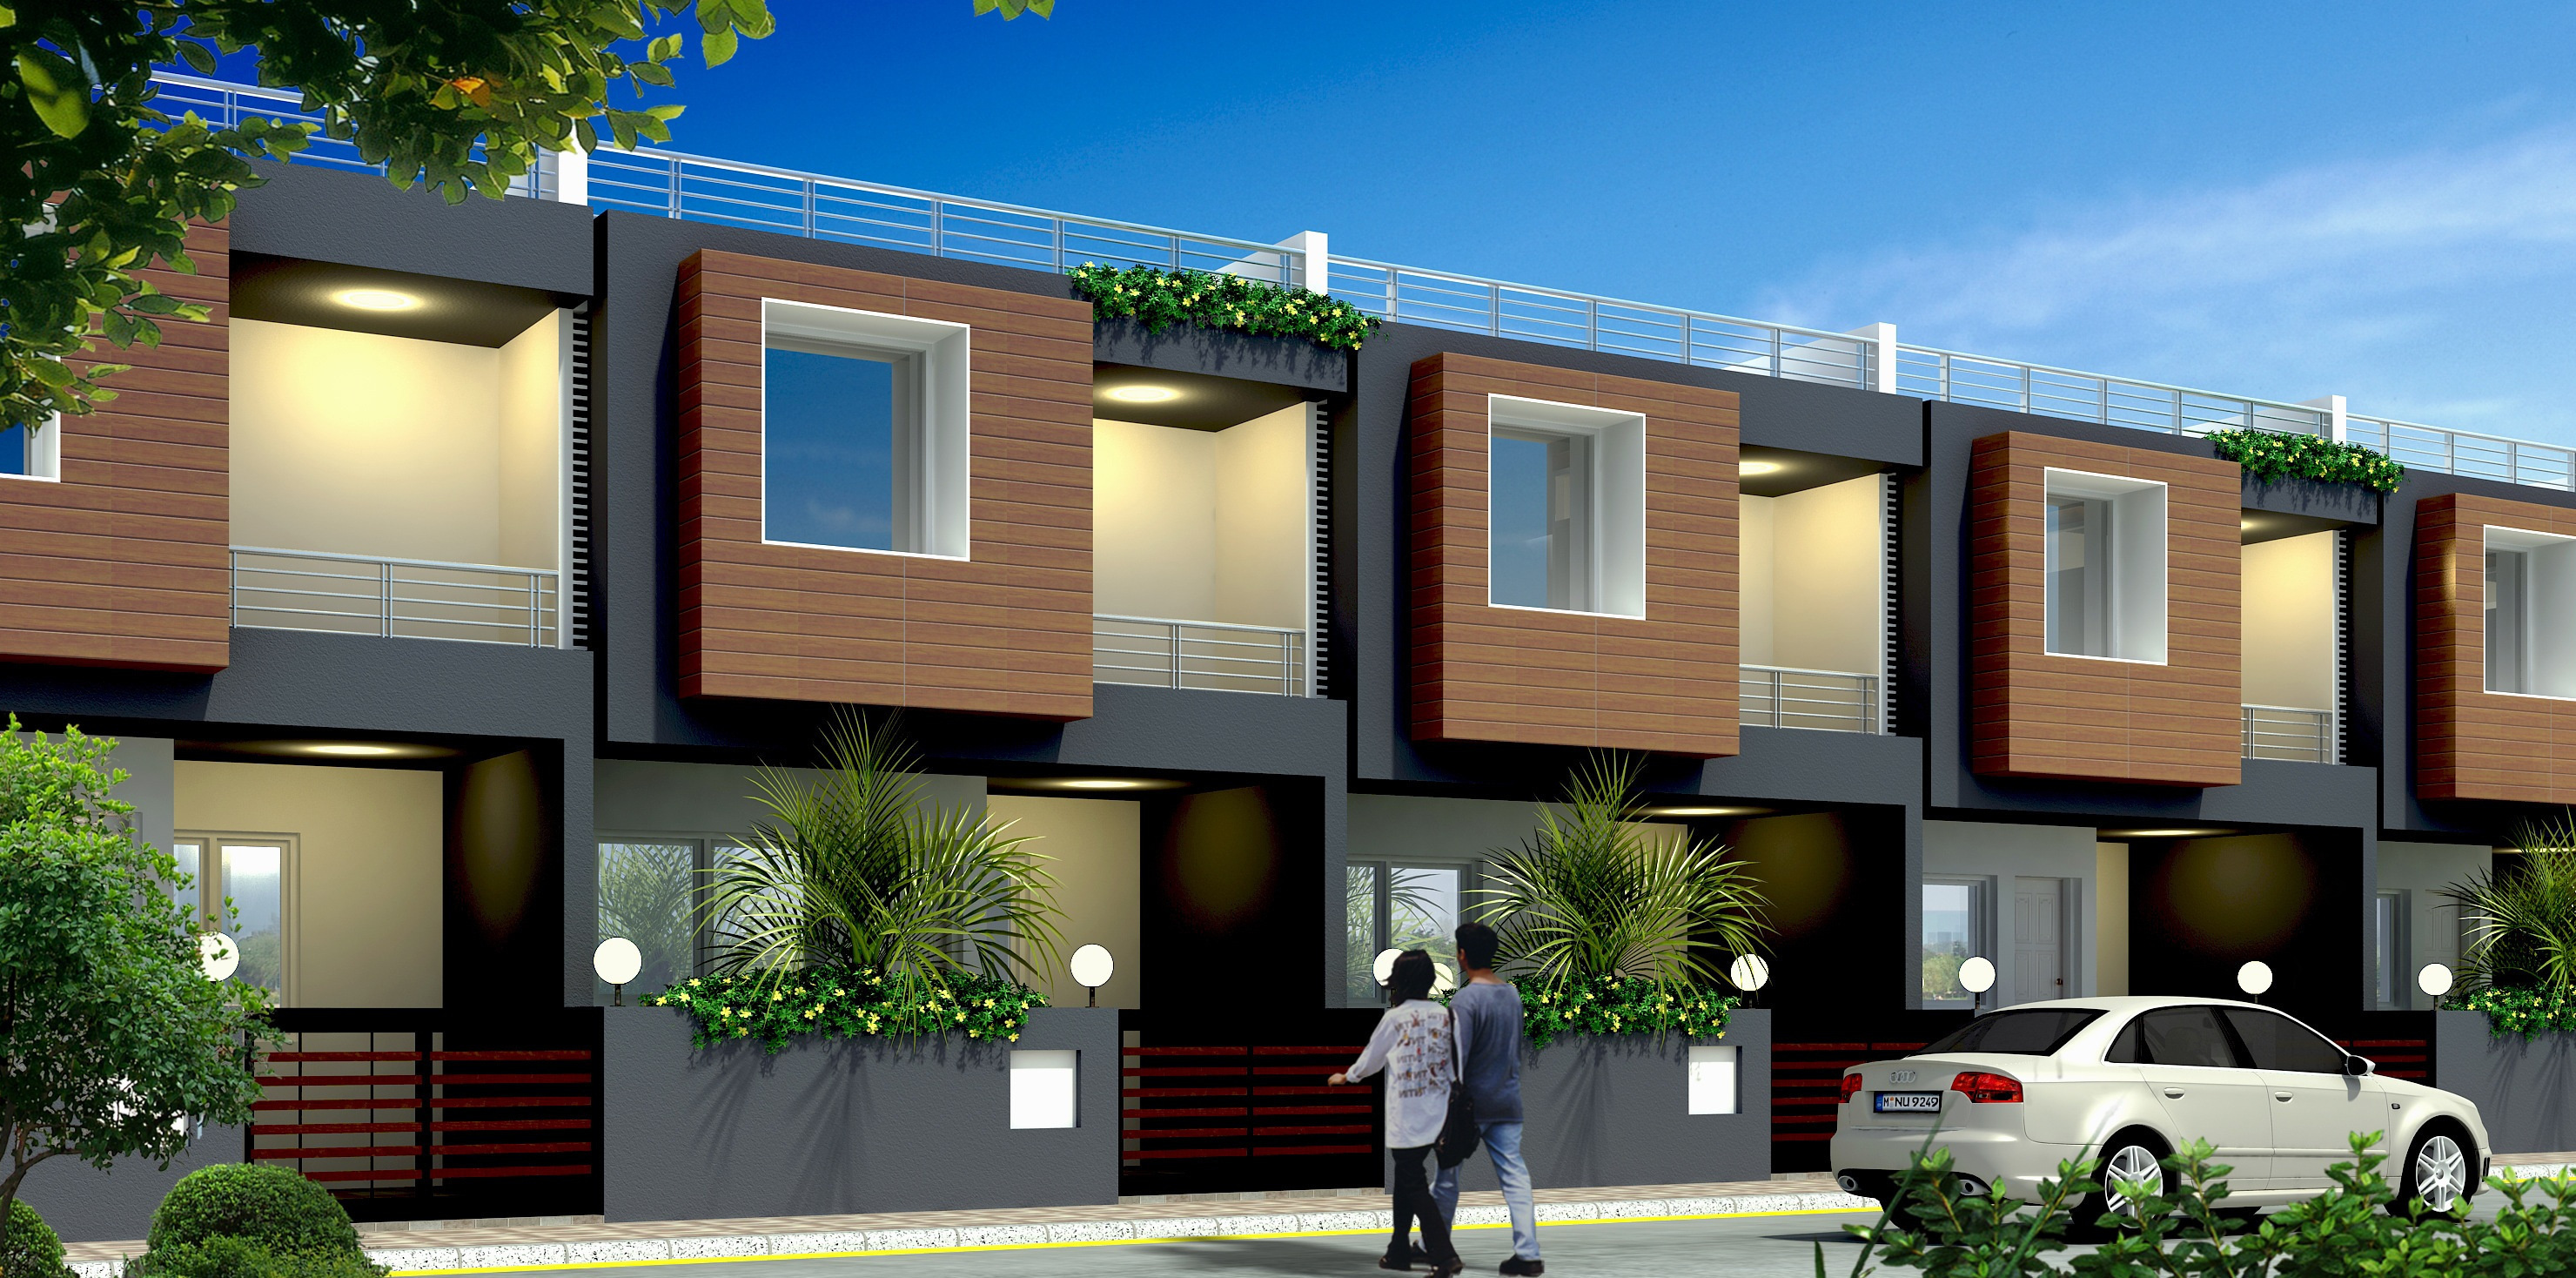 Surya Surya Row House In Indira Nagar, Lucknow